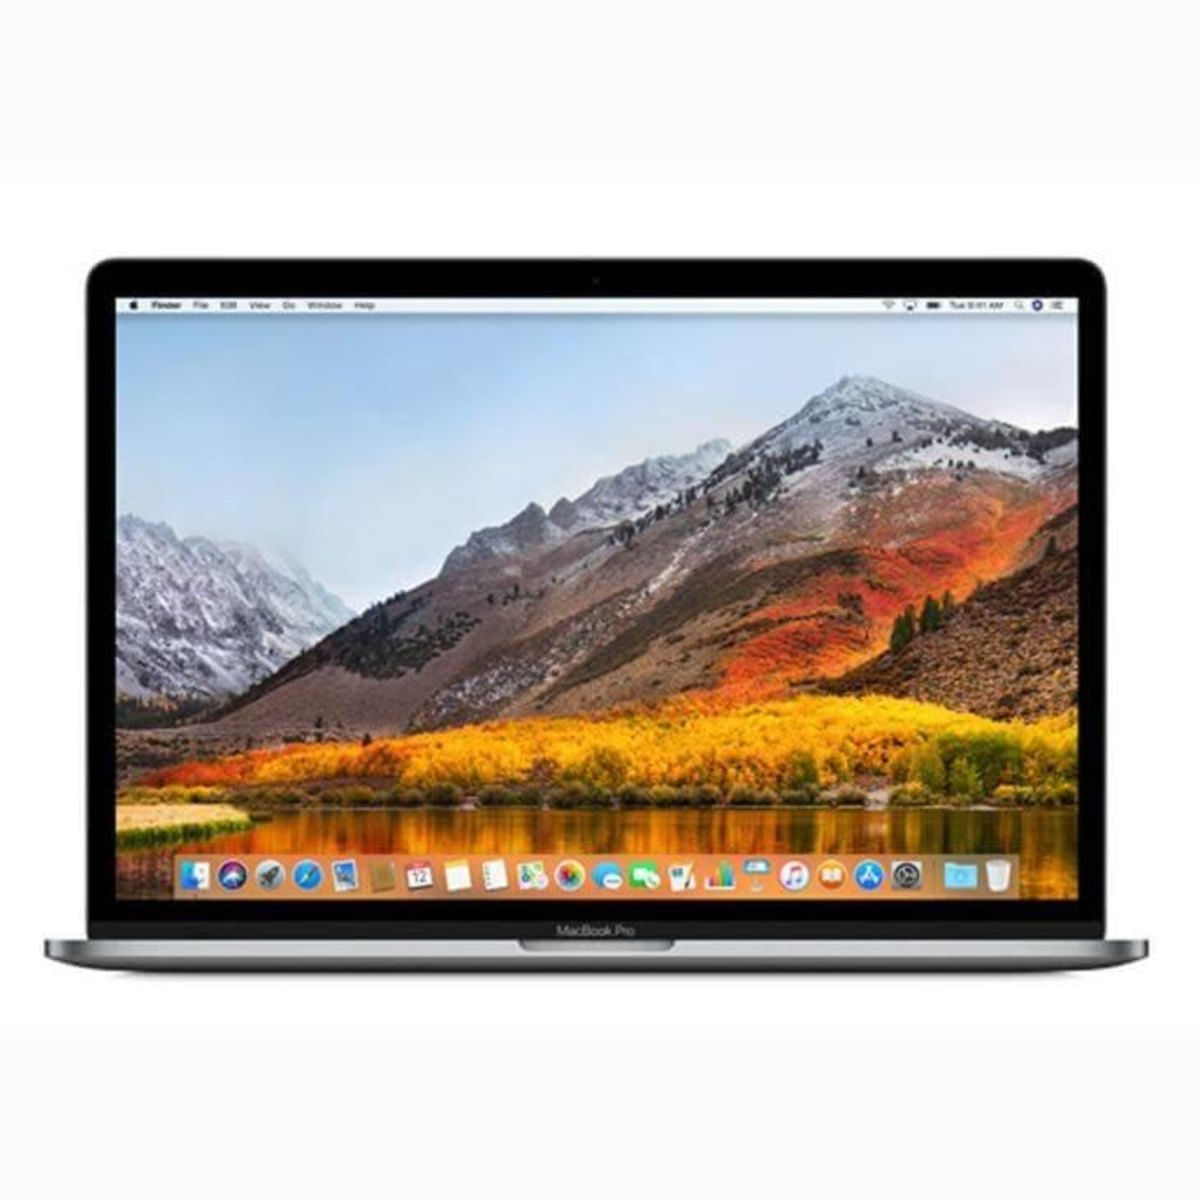 "Macbook - Apple Mr932bz/a I7 2.20ghz 16gb 256gb Ssd Intel Hd Graphics 630 Macos Sierra 15,4"" Polegadas"